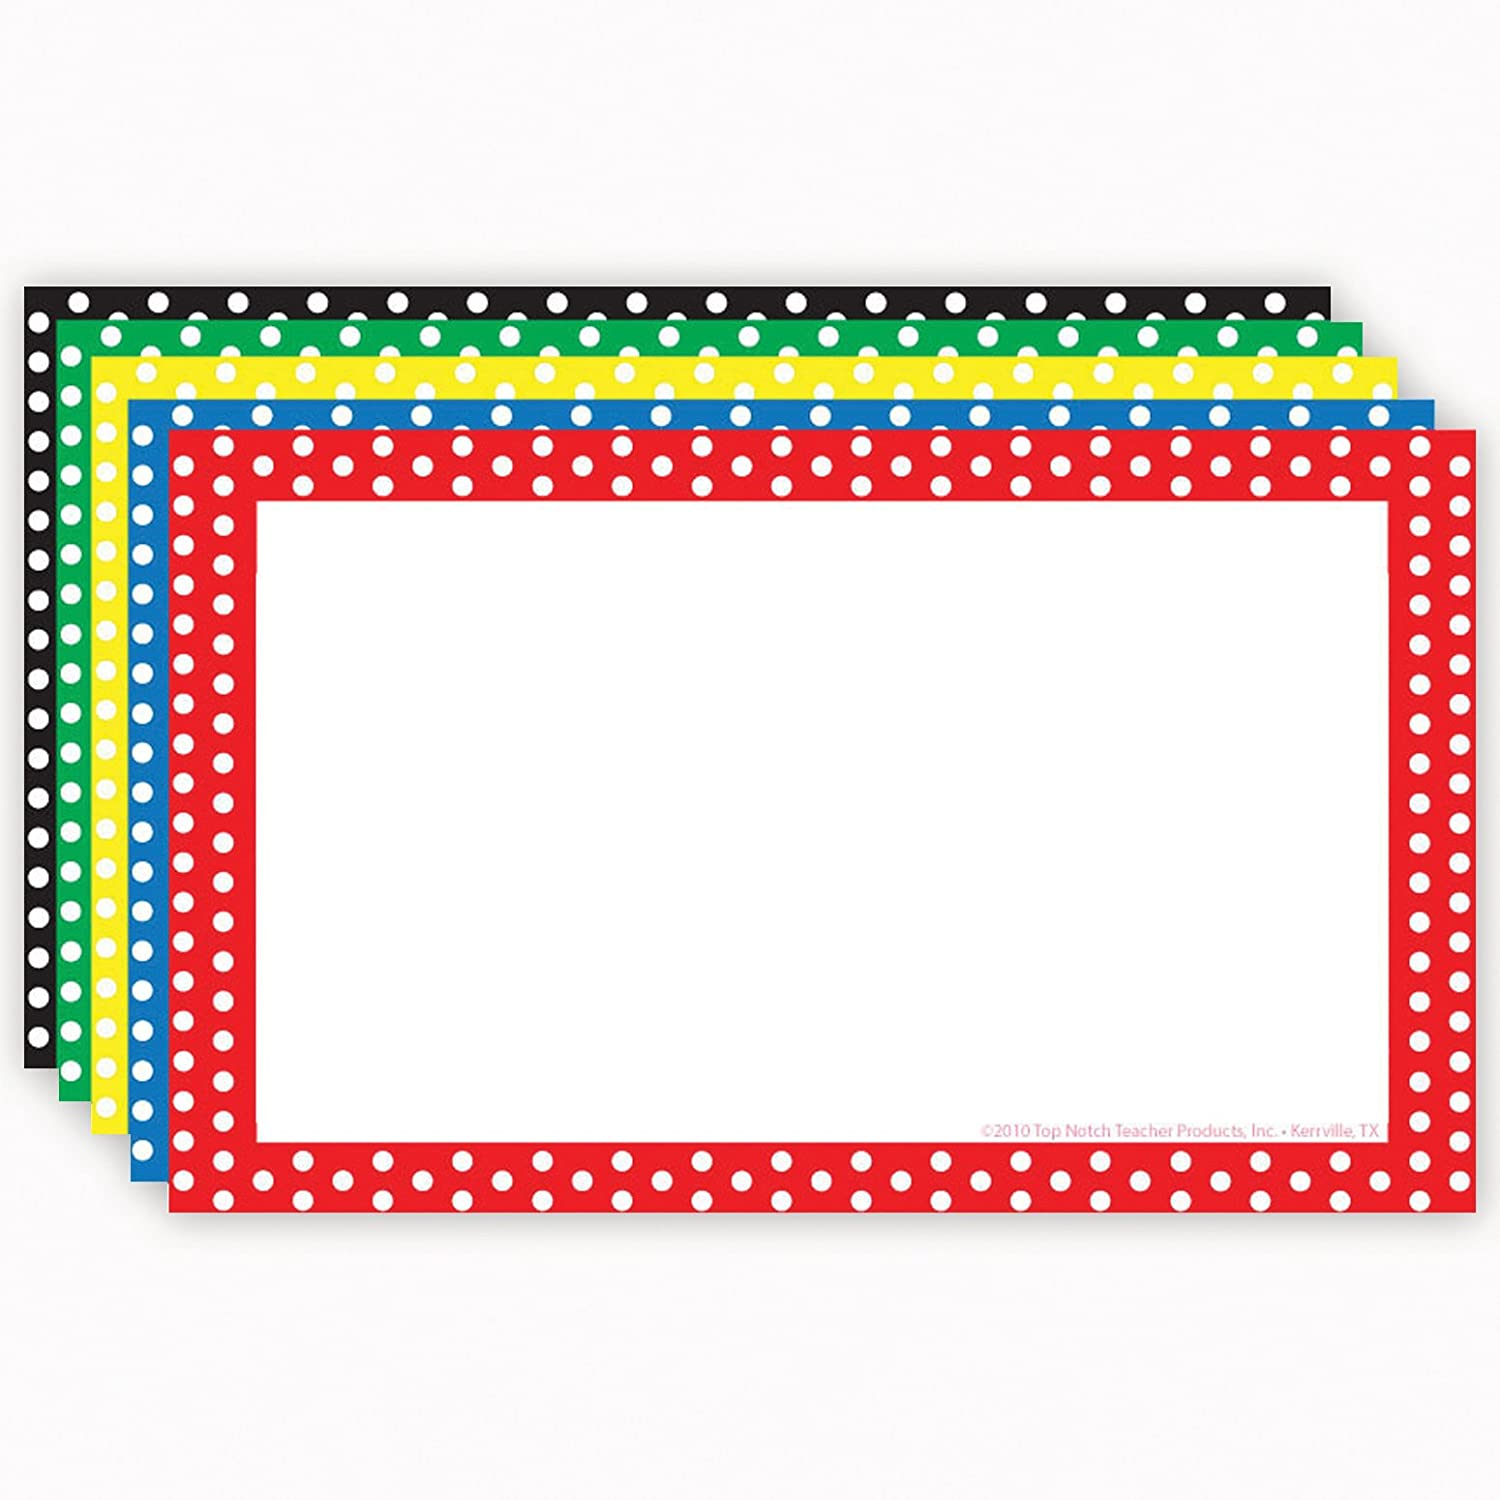 Top Notch Teacher Products Border Blank Index Cards (75 Count), 4 x 6, Polka Dot Assorted